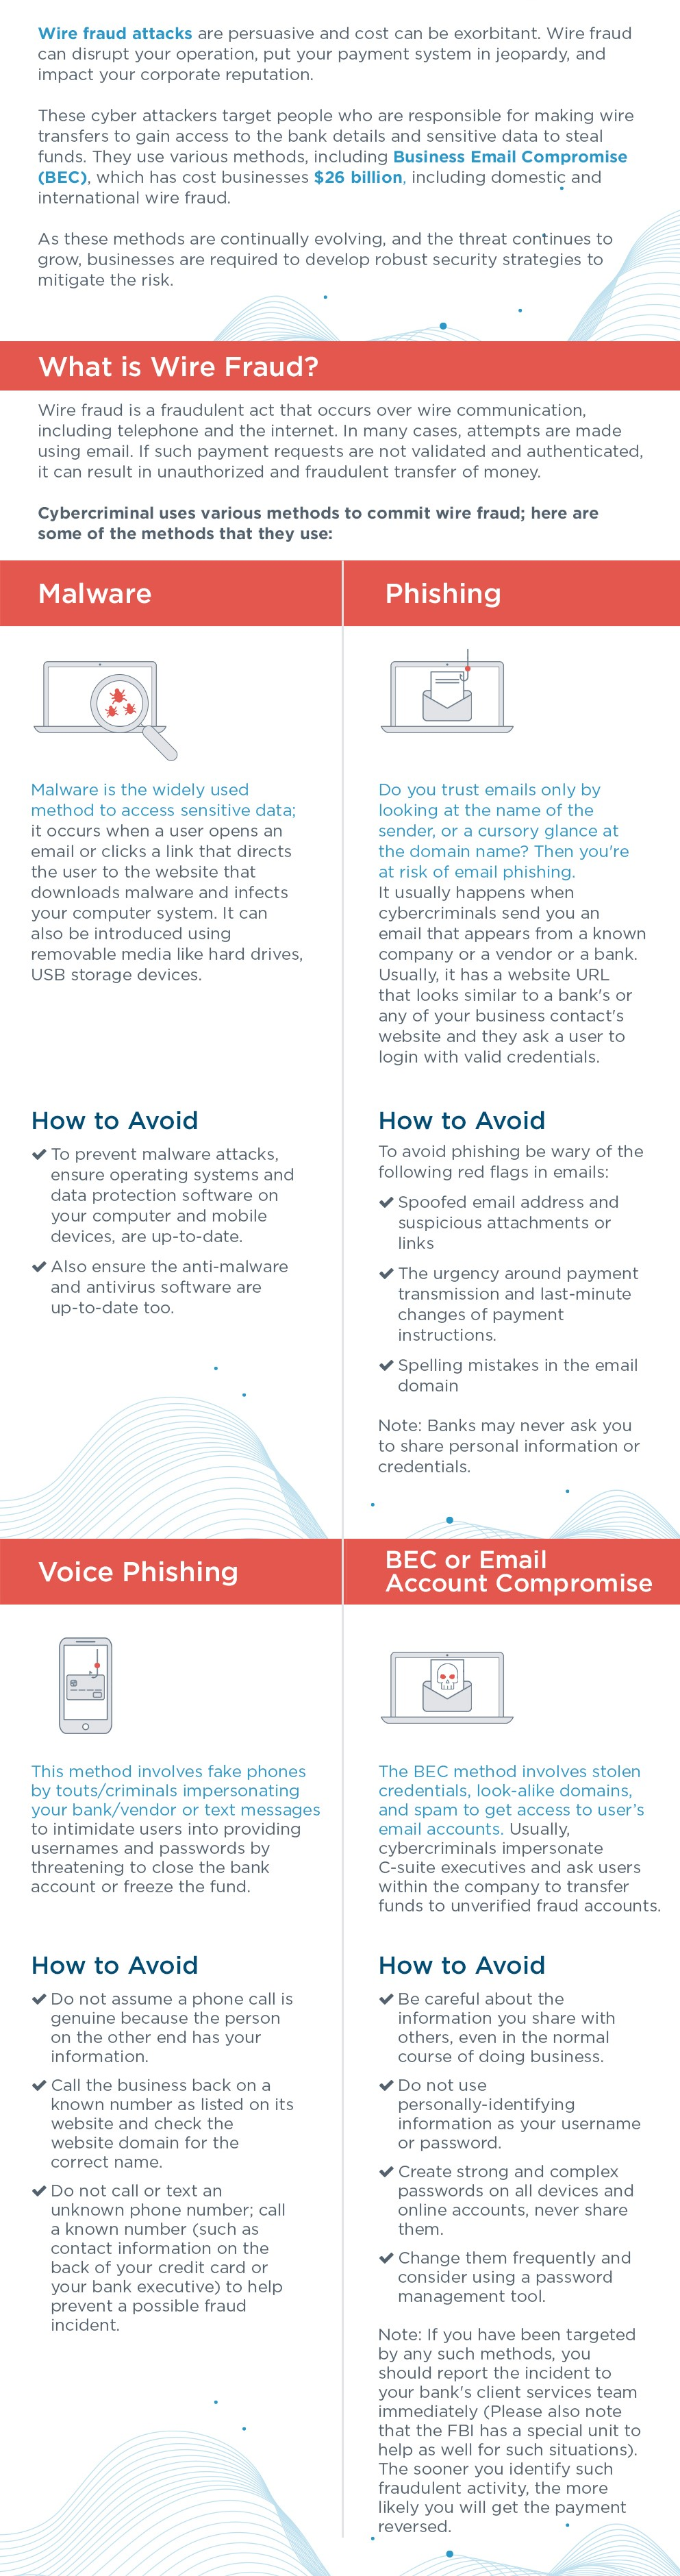 Cloudlex_Wire Fraud Infographic_26th Oct20-02-Final